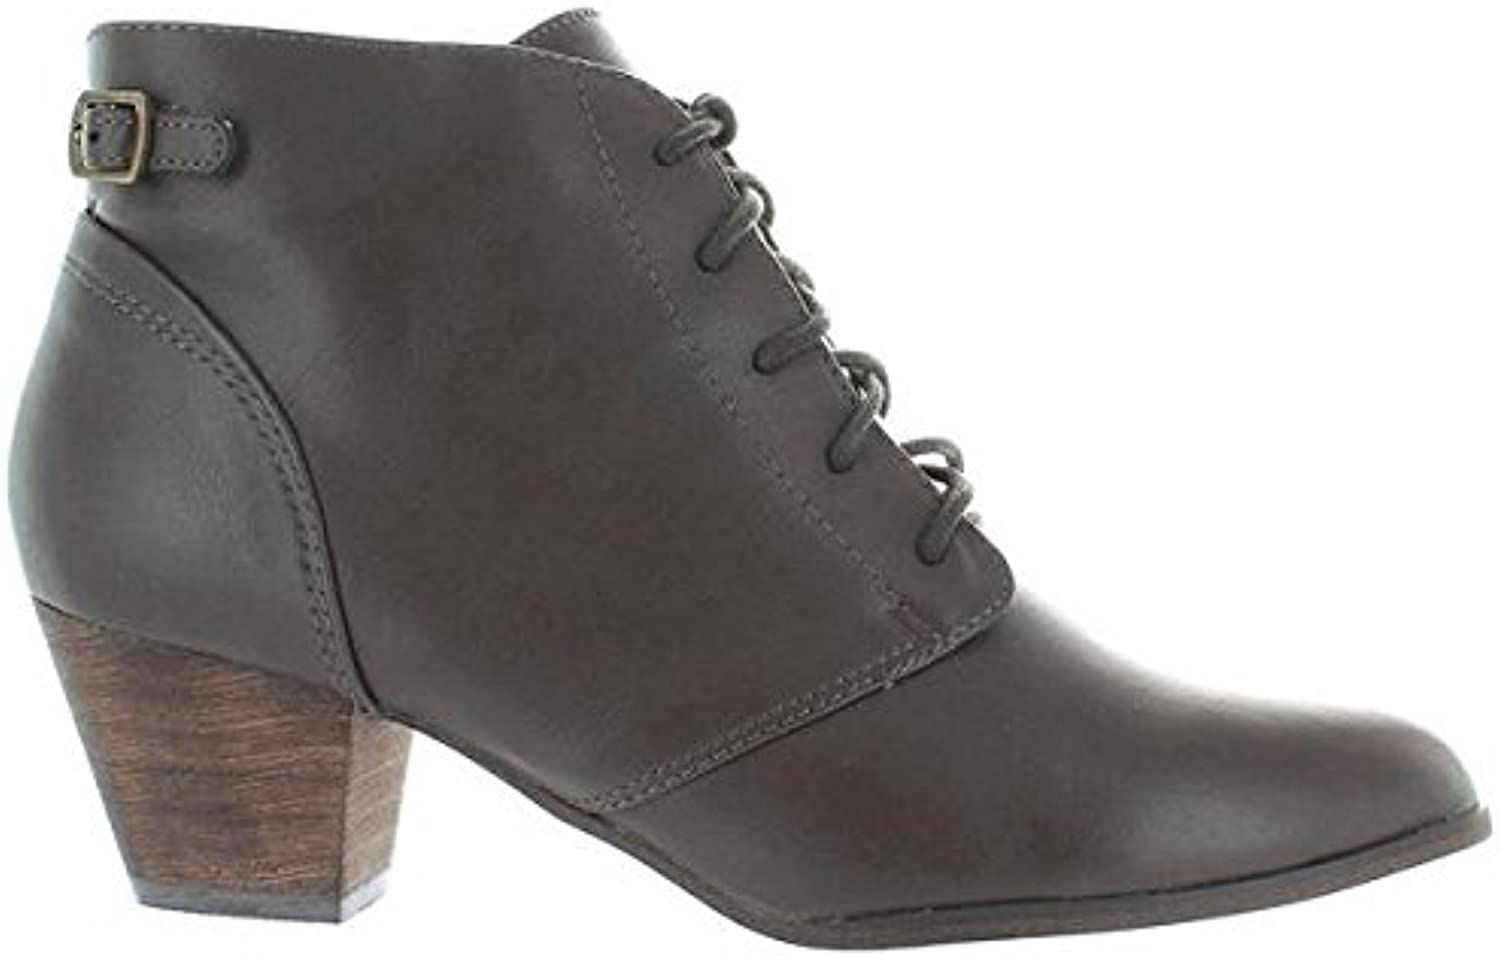 Chelsea Crew Lord - Grey Lace-Up Bootie